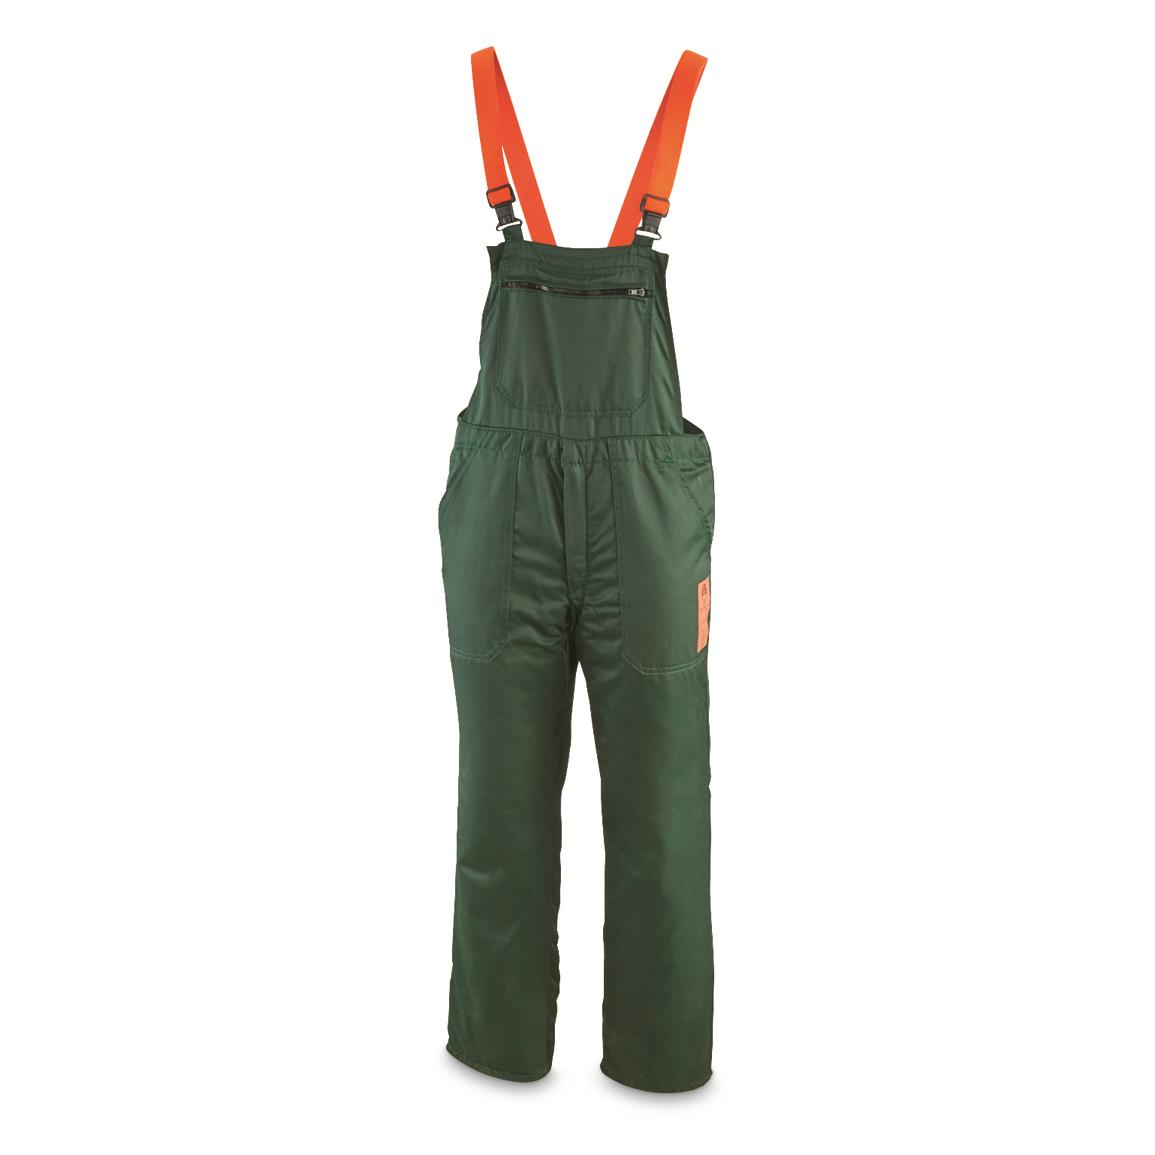 German Military Surplus Kevlar Cut Resistant Bib Overalls, Used, Olive Drab